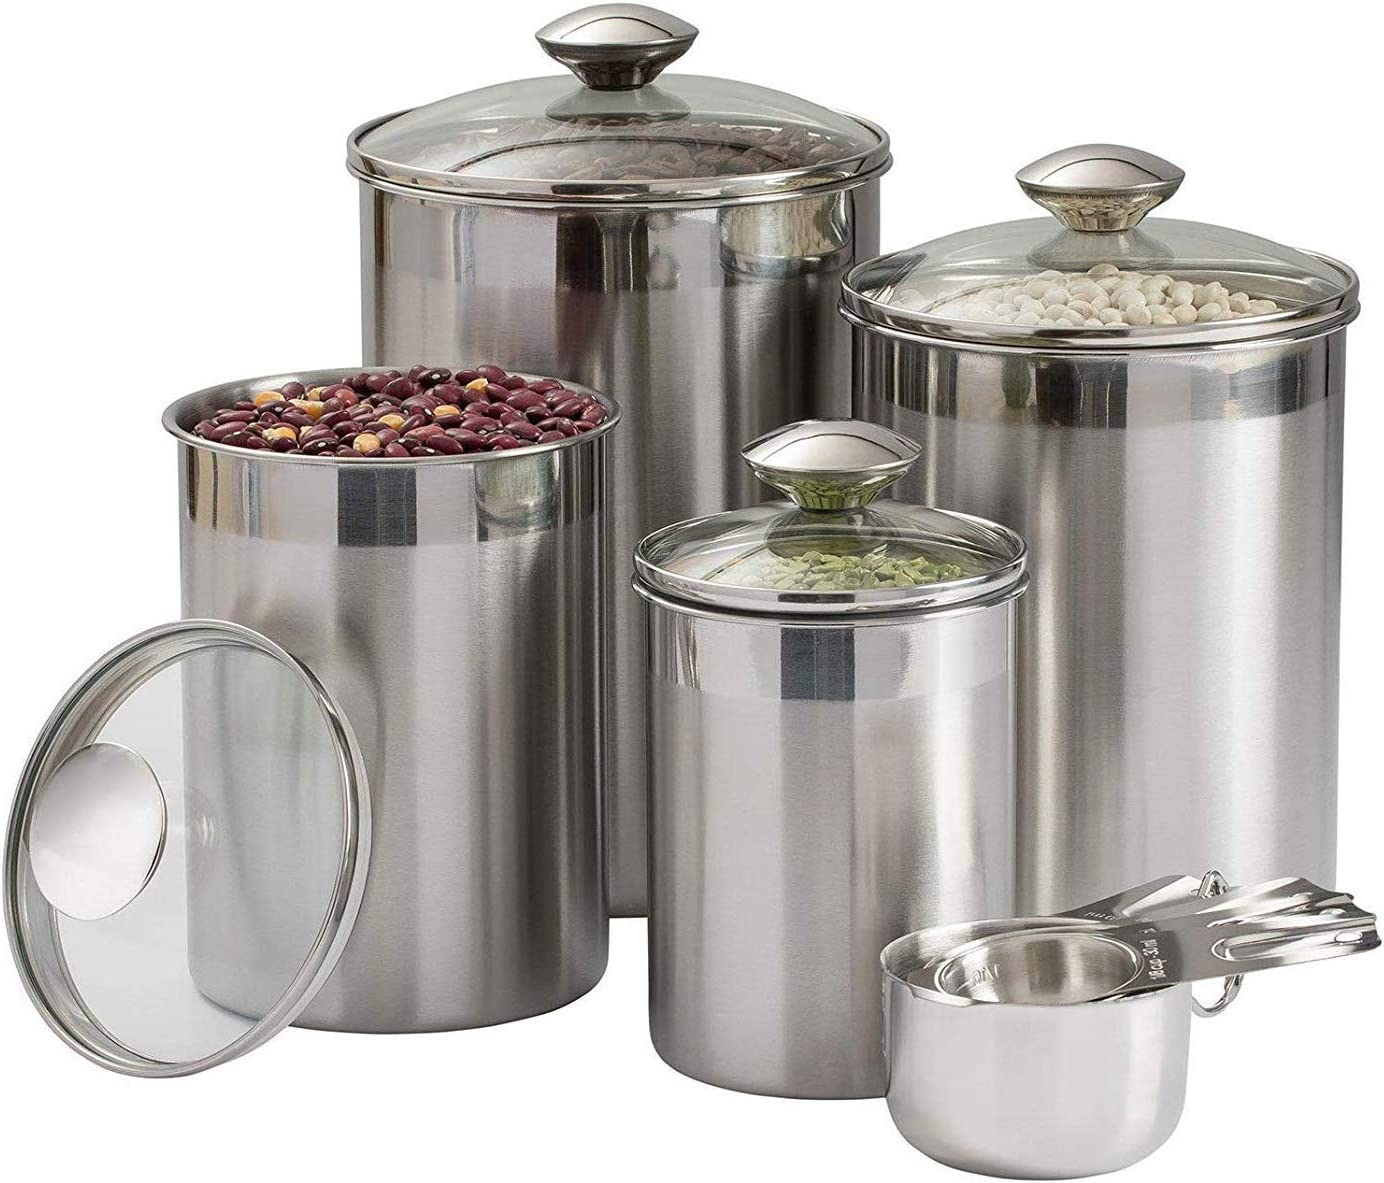 Beautiful Canisters Sets For The Kitchen Counter 8 Piece Stainless Steel Medium Sized With Glass Lids And Measuring Cups Silveronyx Tea Coffee Sugar Flour Canisters 8pc Glass Lids Amazon Co Uk Home